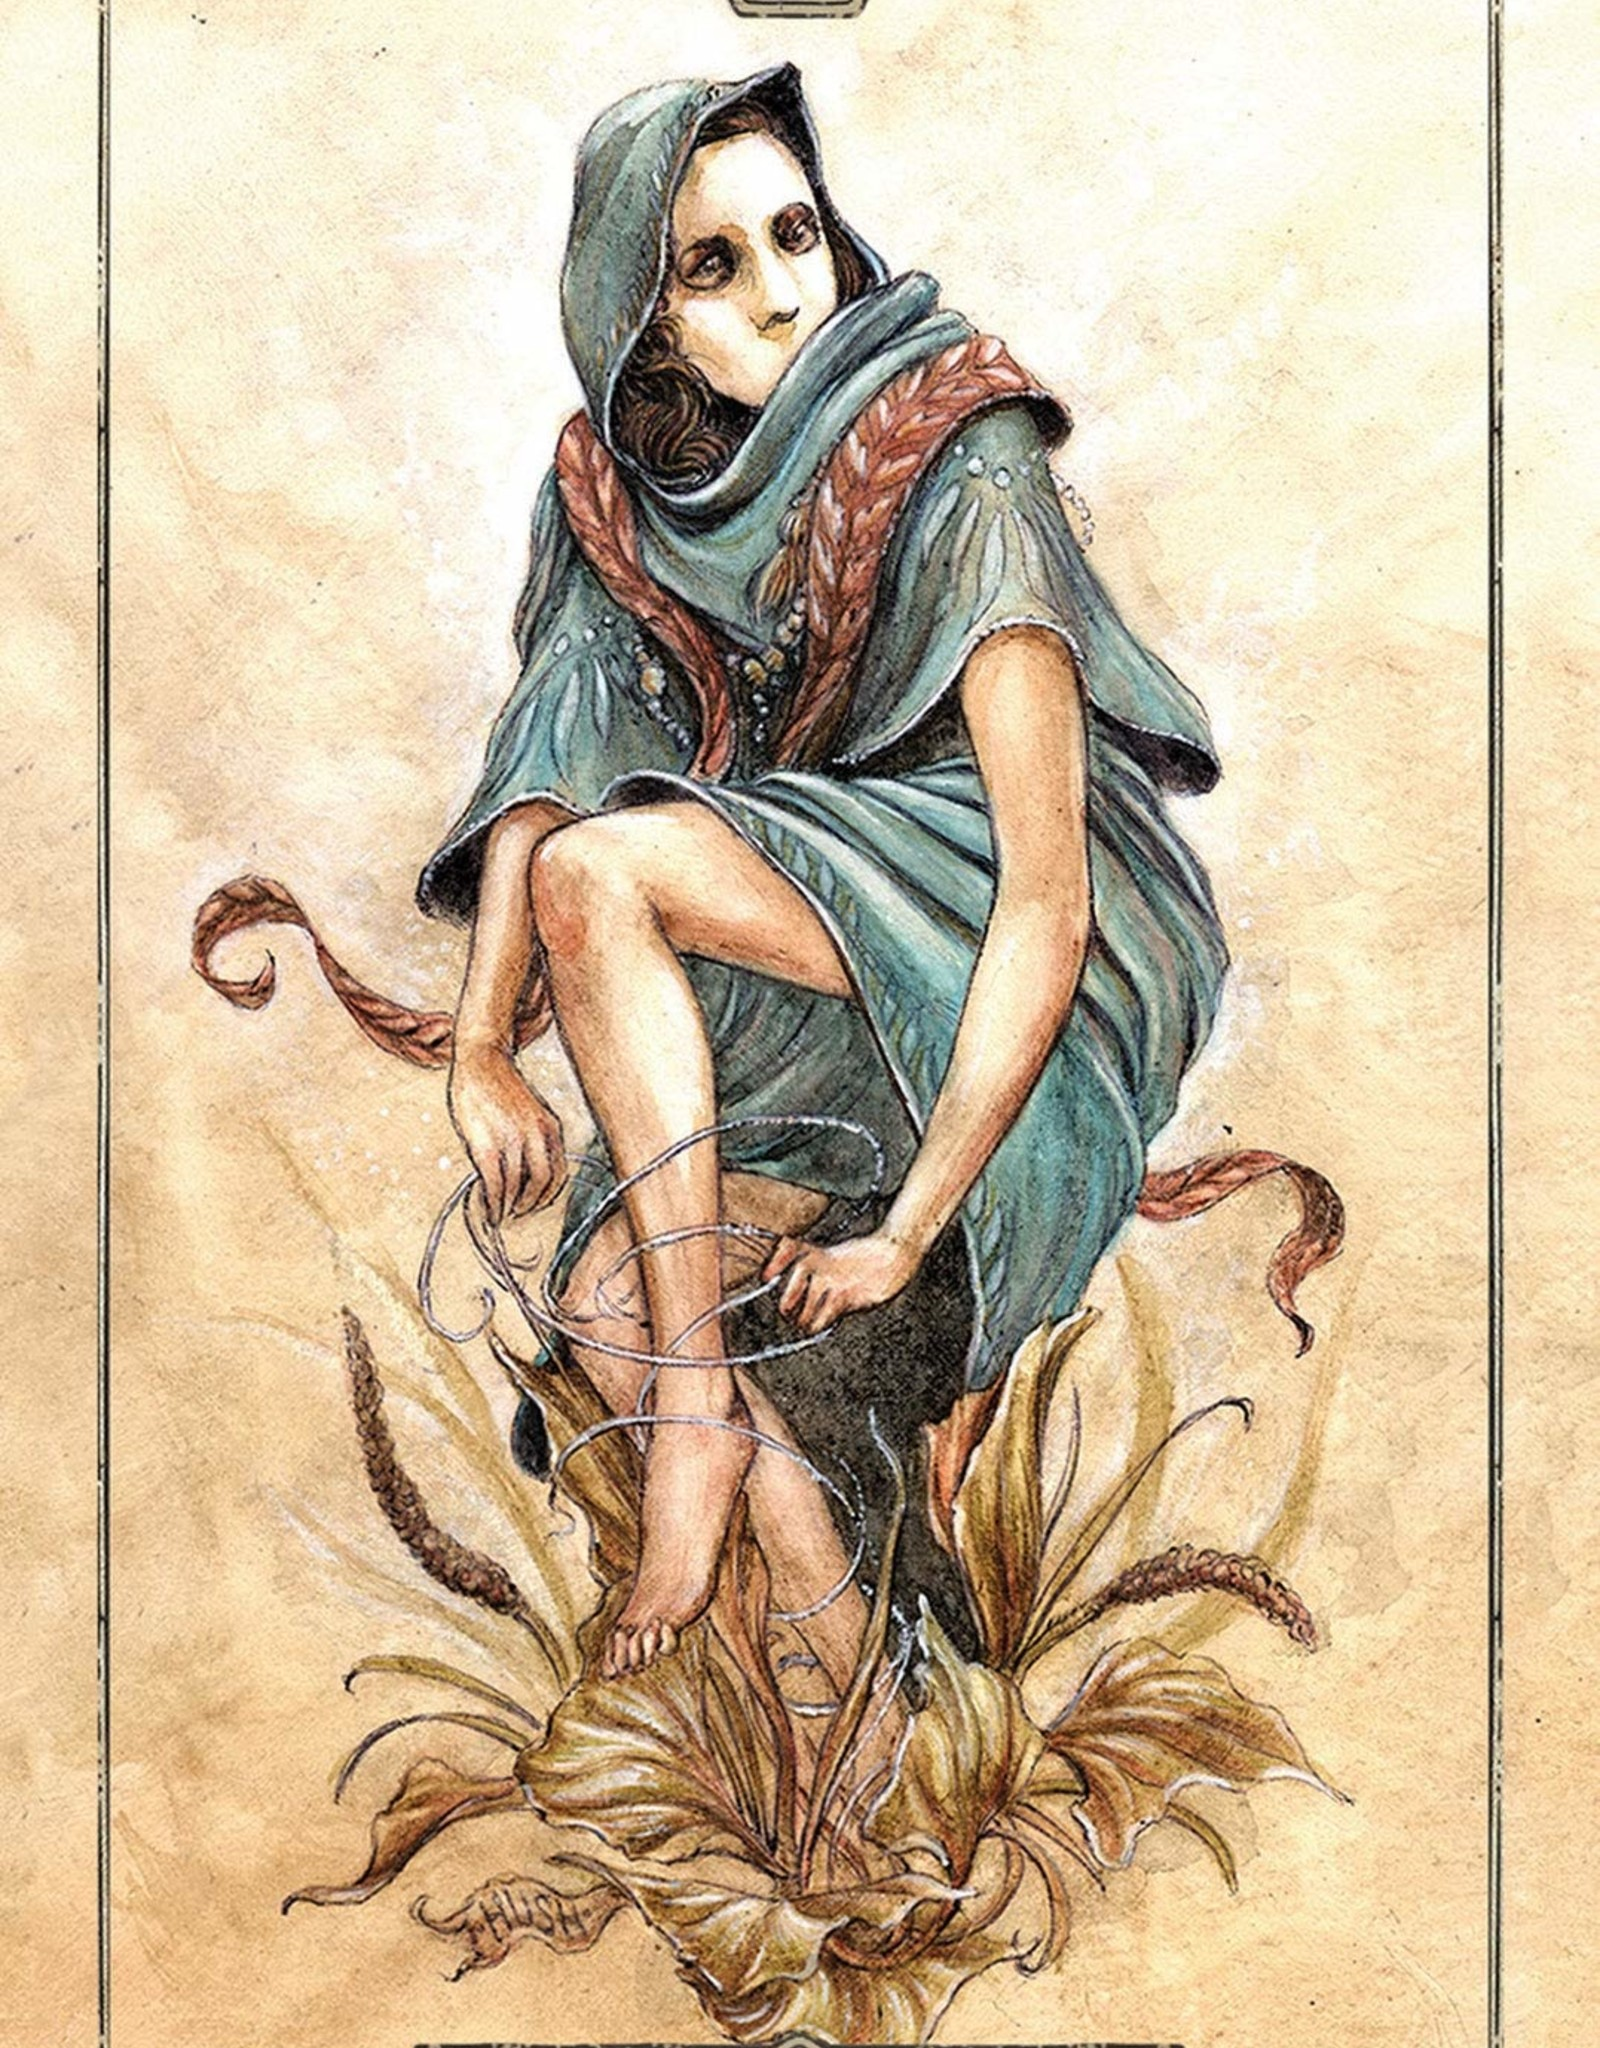 U.S. Games Systems, Inc. Hush Tarot